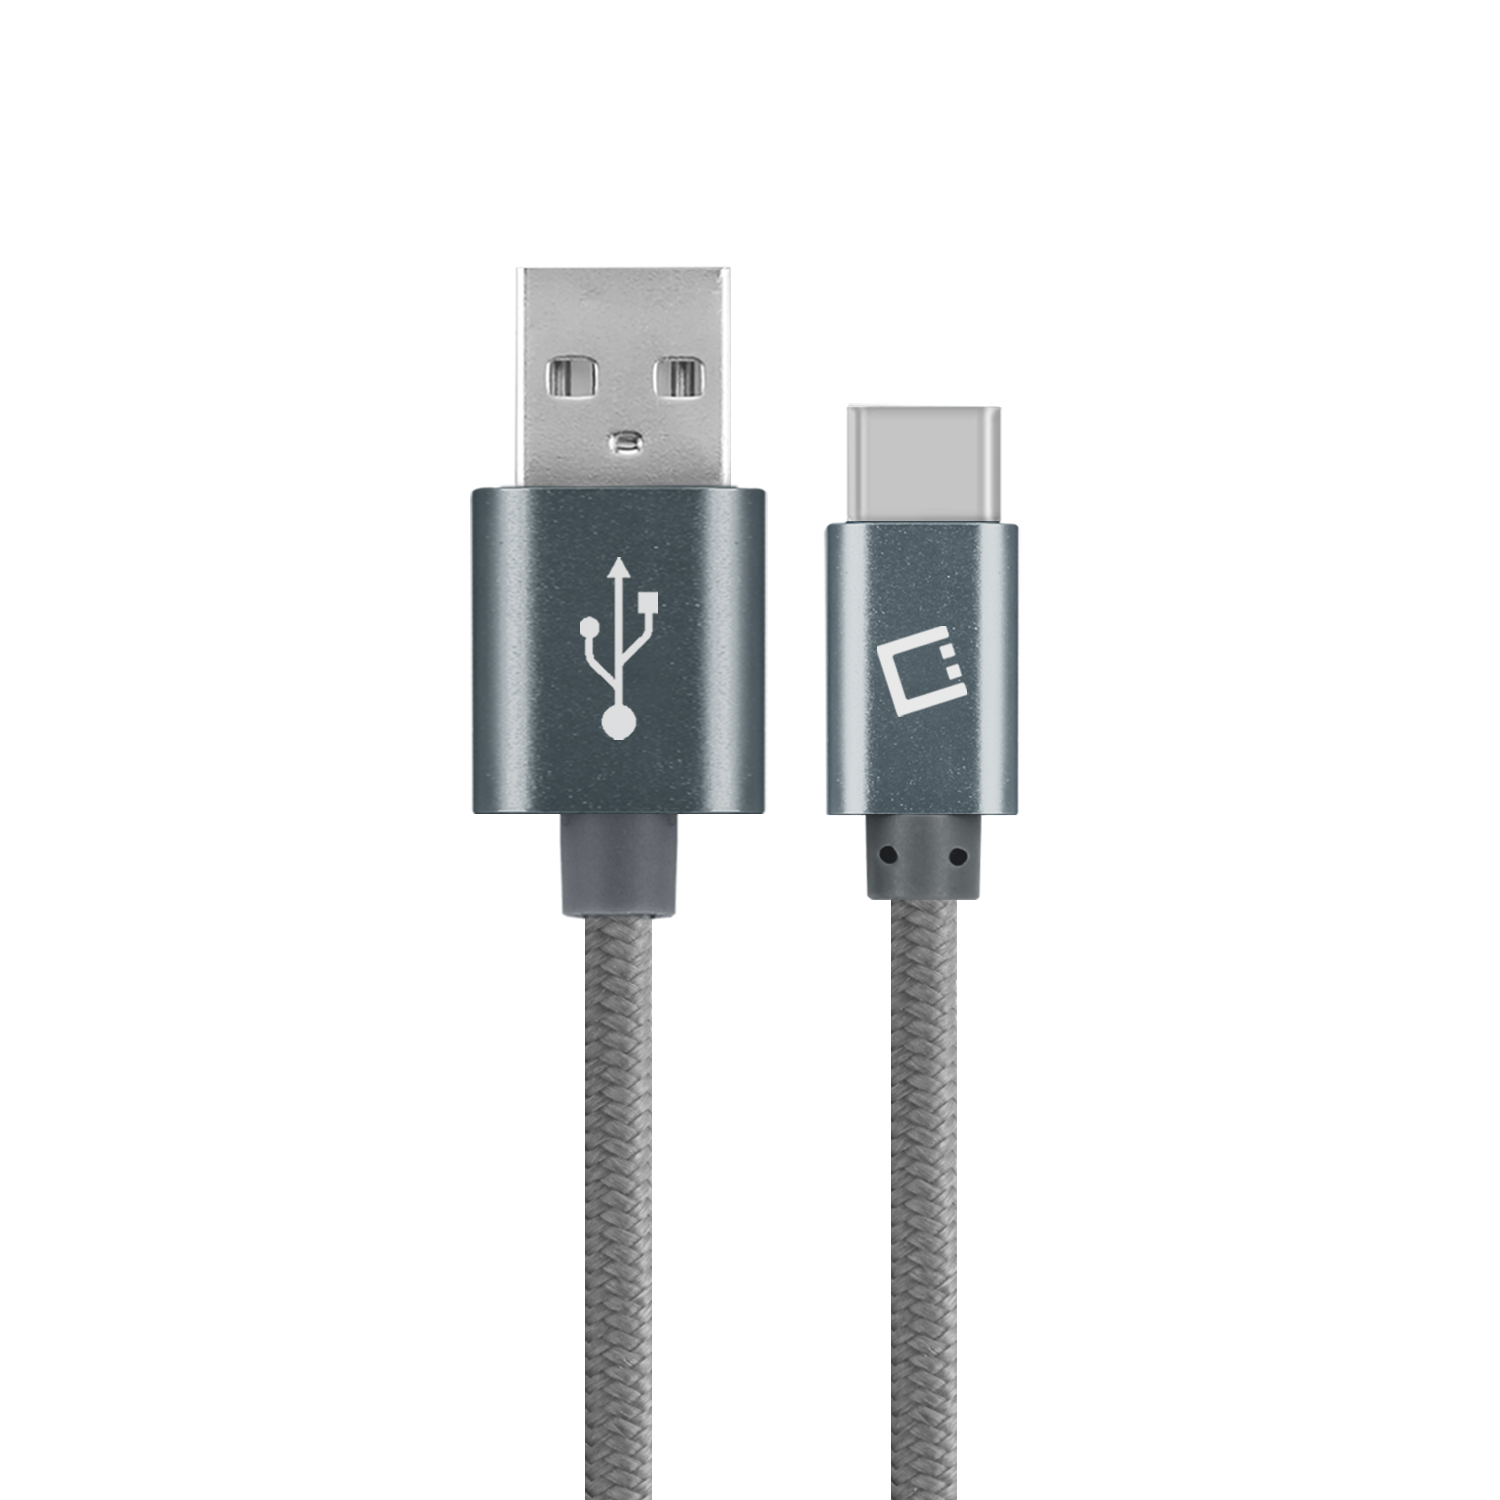 Samsung Galaxy S20 Ultra USB Type-C To Type-A Braided Data Power Cable Grey 10ft Braided